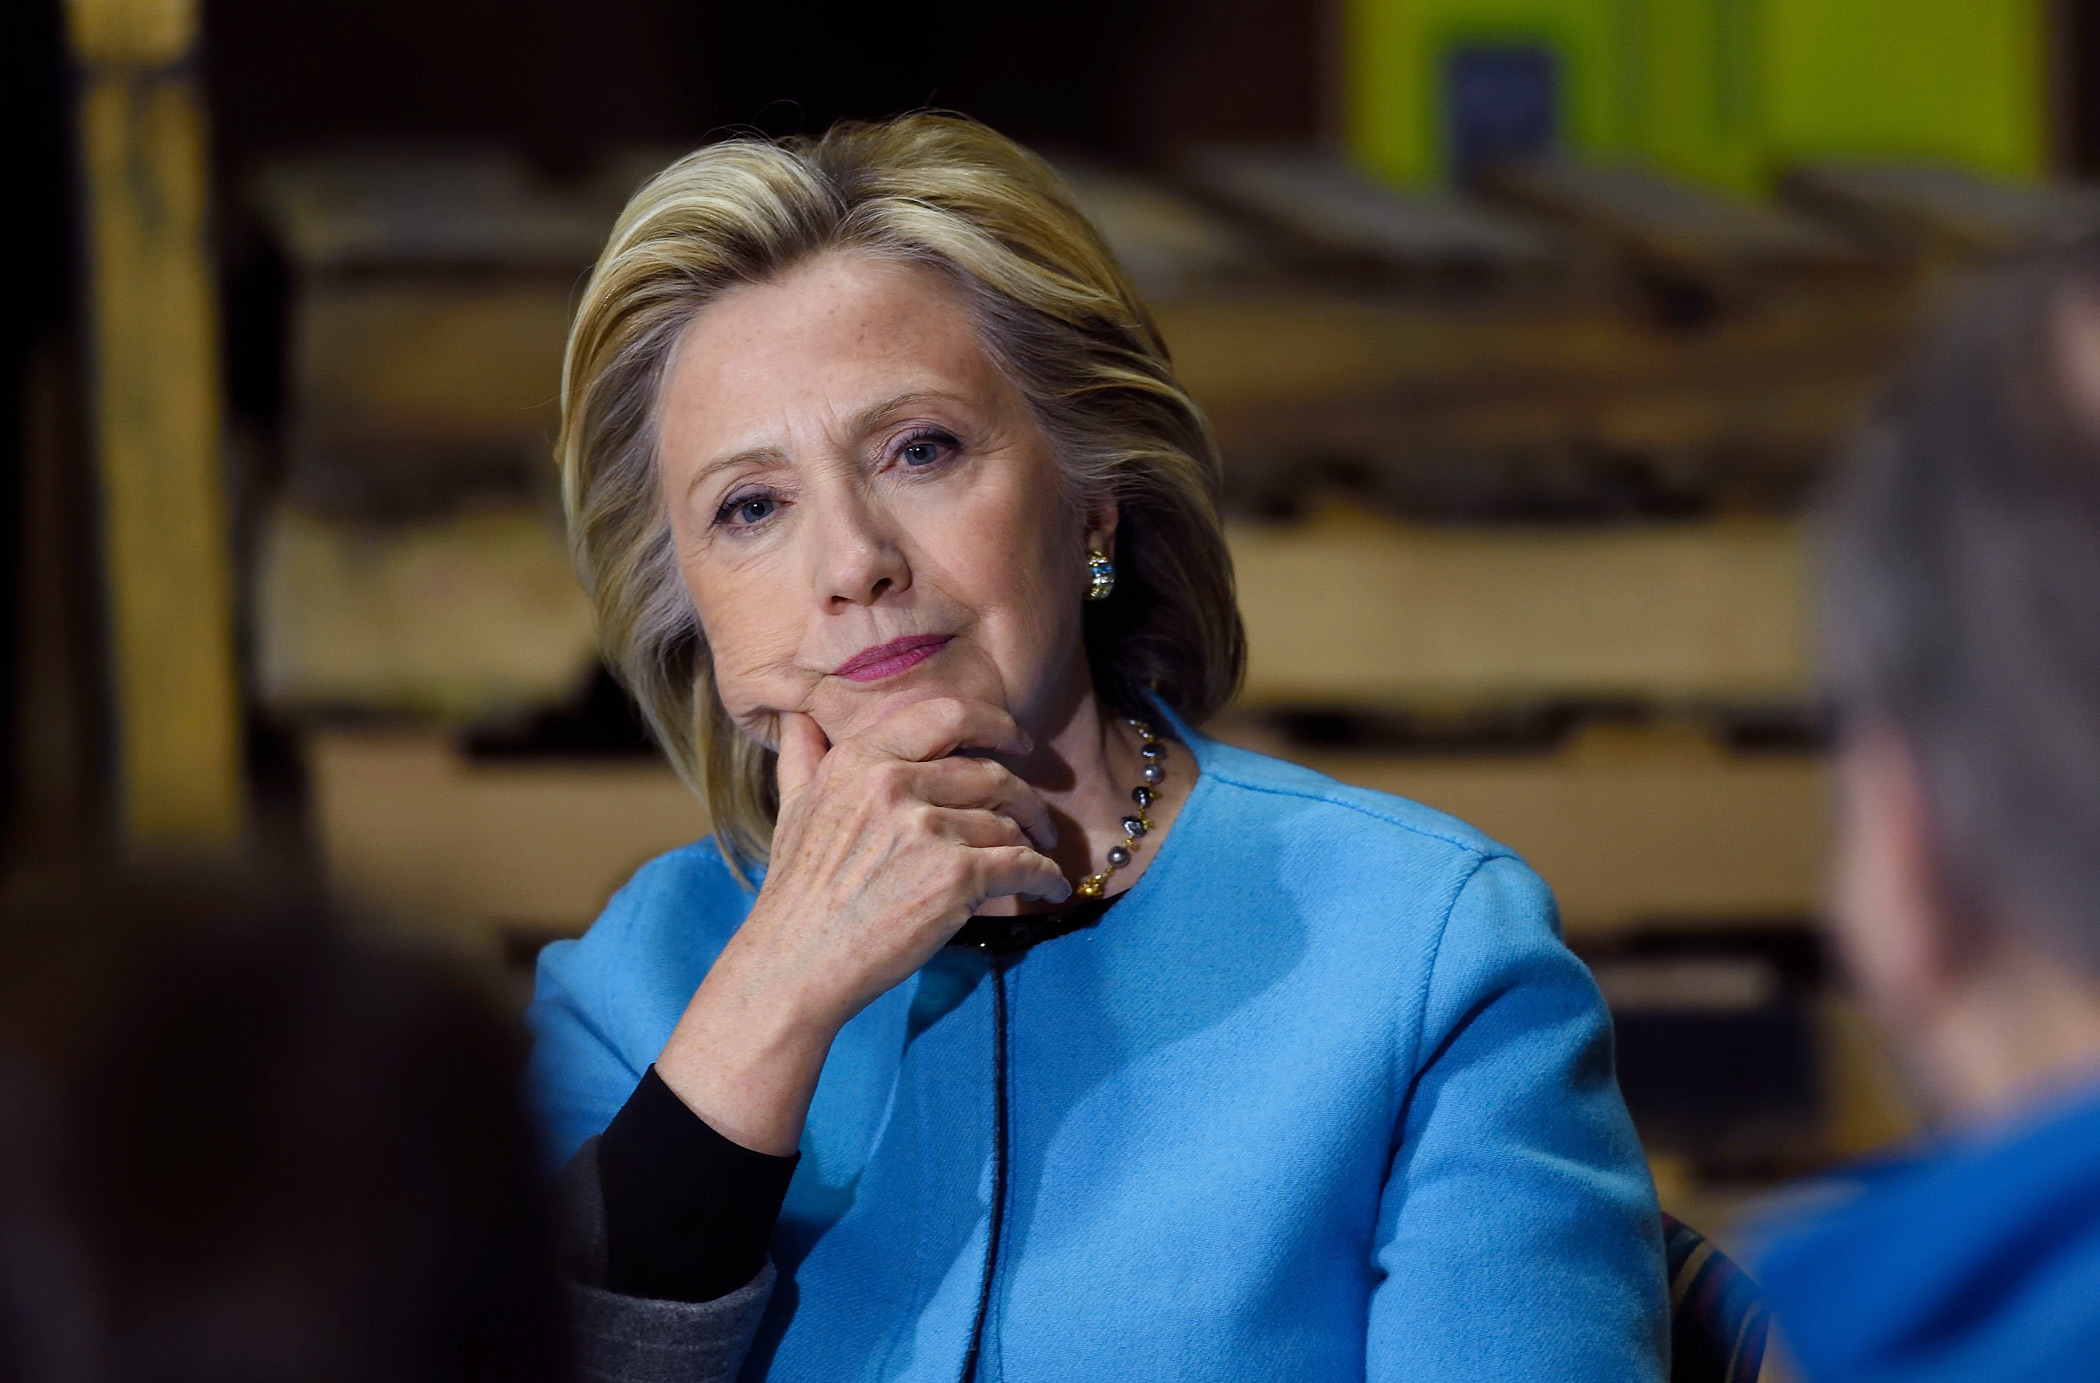 Hillary Clinton participates in a round table discussion with Whitney Brothers management and employees on April 20, 2015 in Keene, NH.